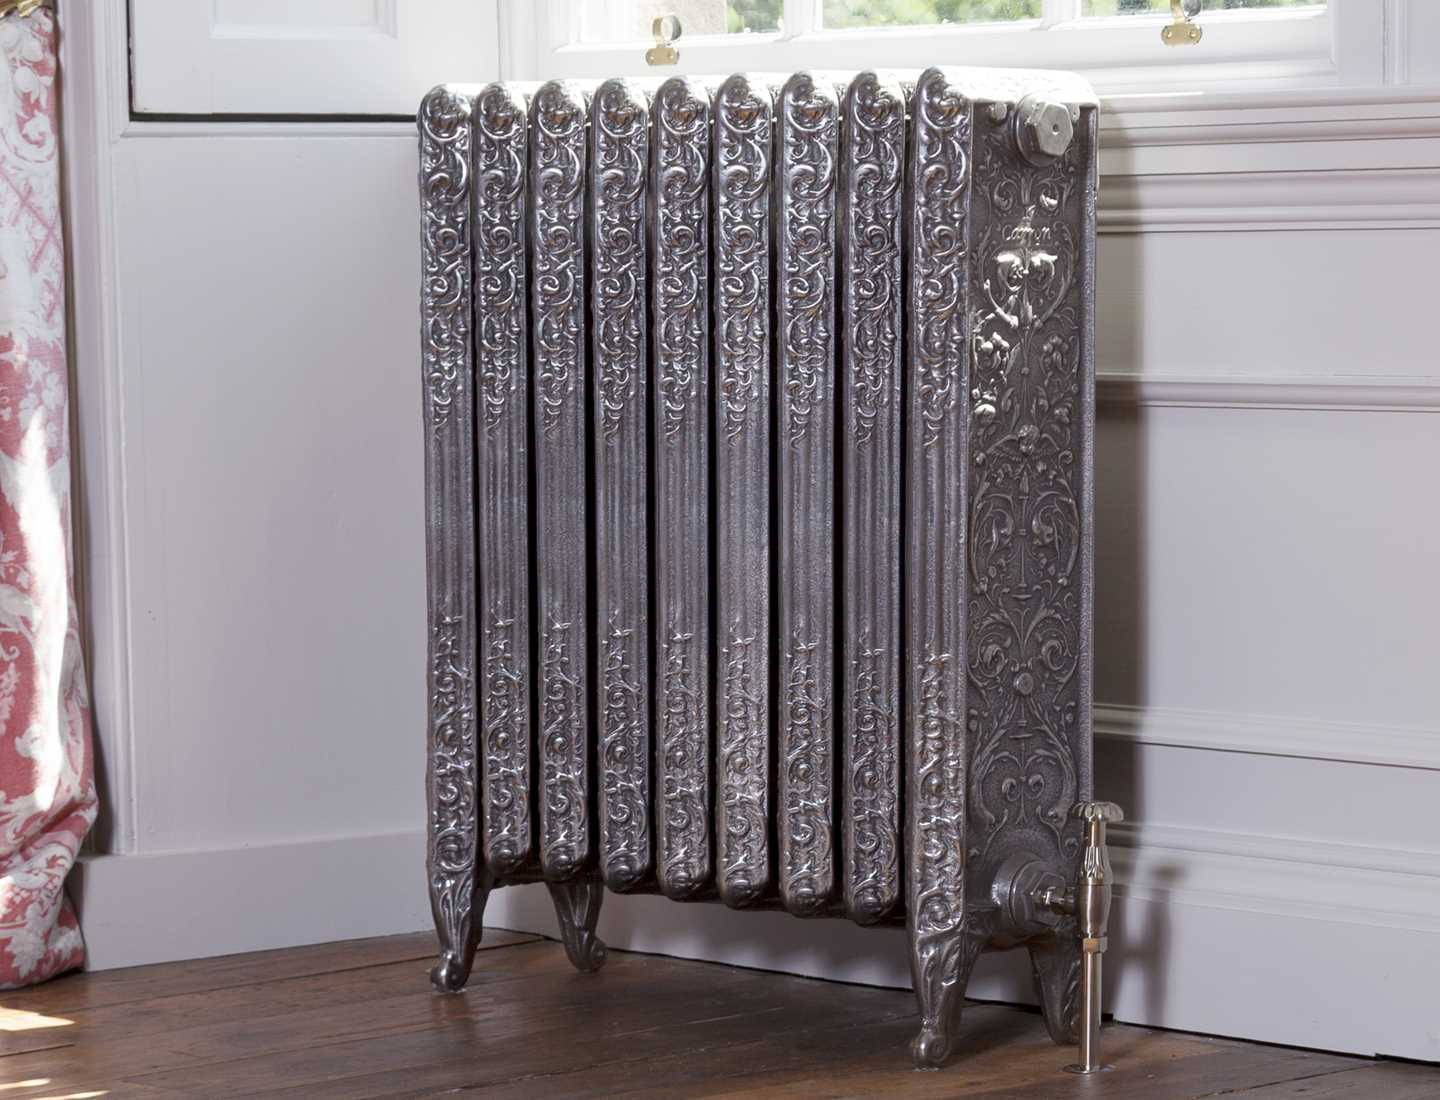 Michaleangelo section radiator, hand burnished with Crocus radiator valves